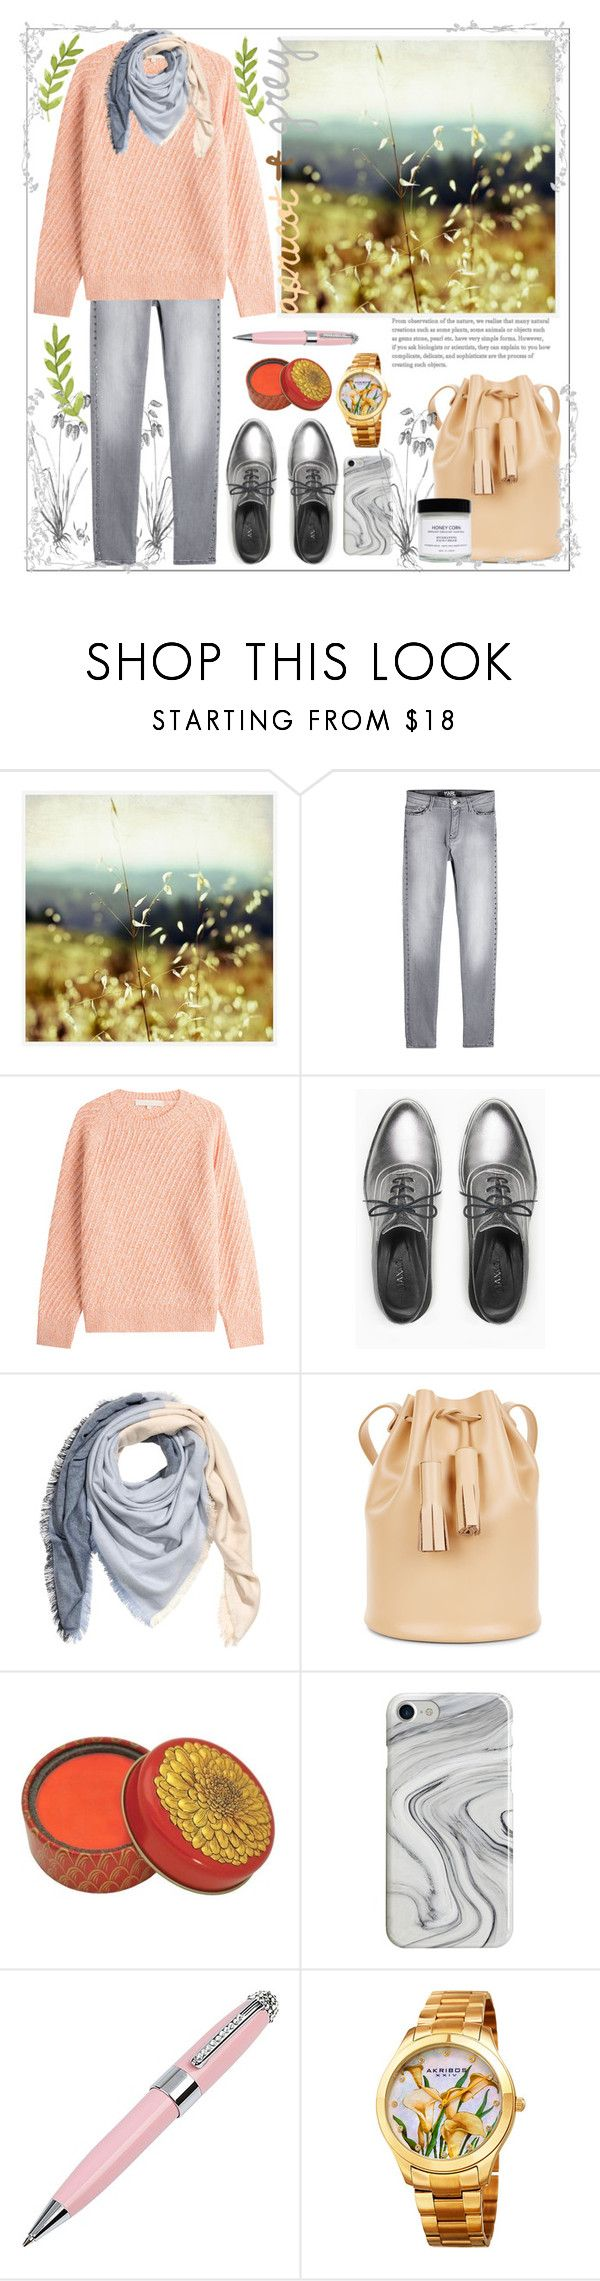 """""""Apricot & grey"""" by natalyapril1976 ❤ liked on Polyvore featuring Pottery Barn, Karl Lagerfeld, Vanessa Bruno, Max&Co., Building Block, Recover, ICE London, Akribos XXIV and Honey Corn"""